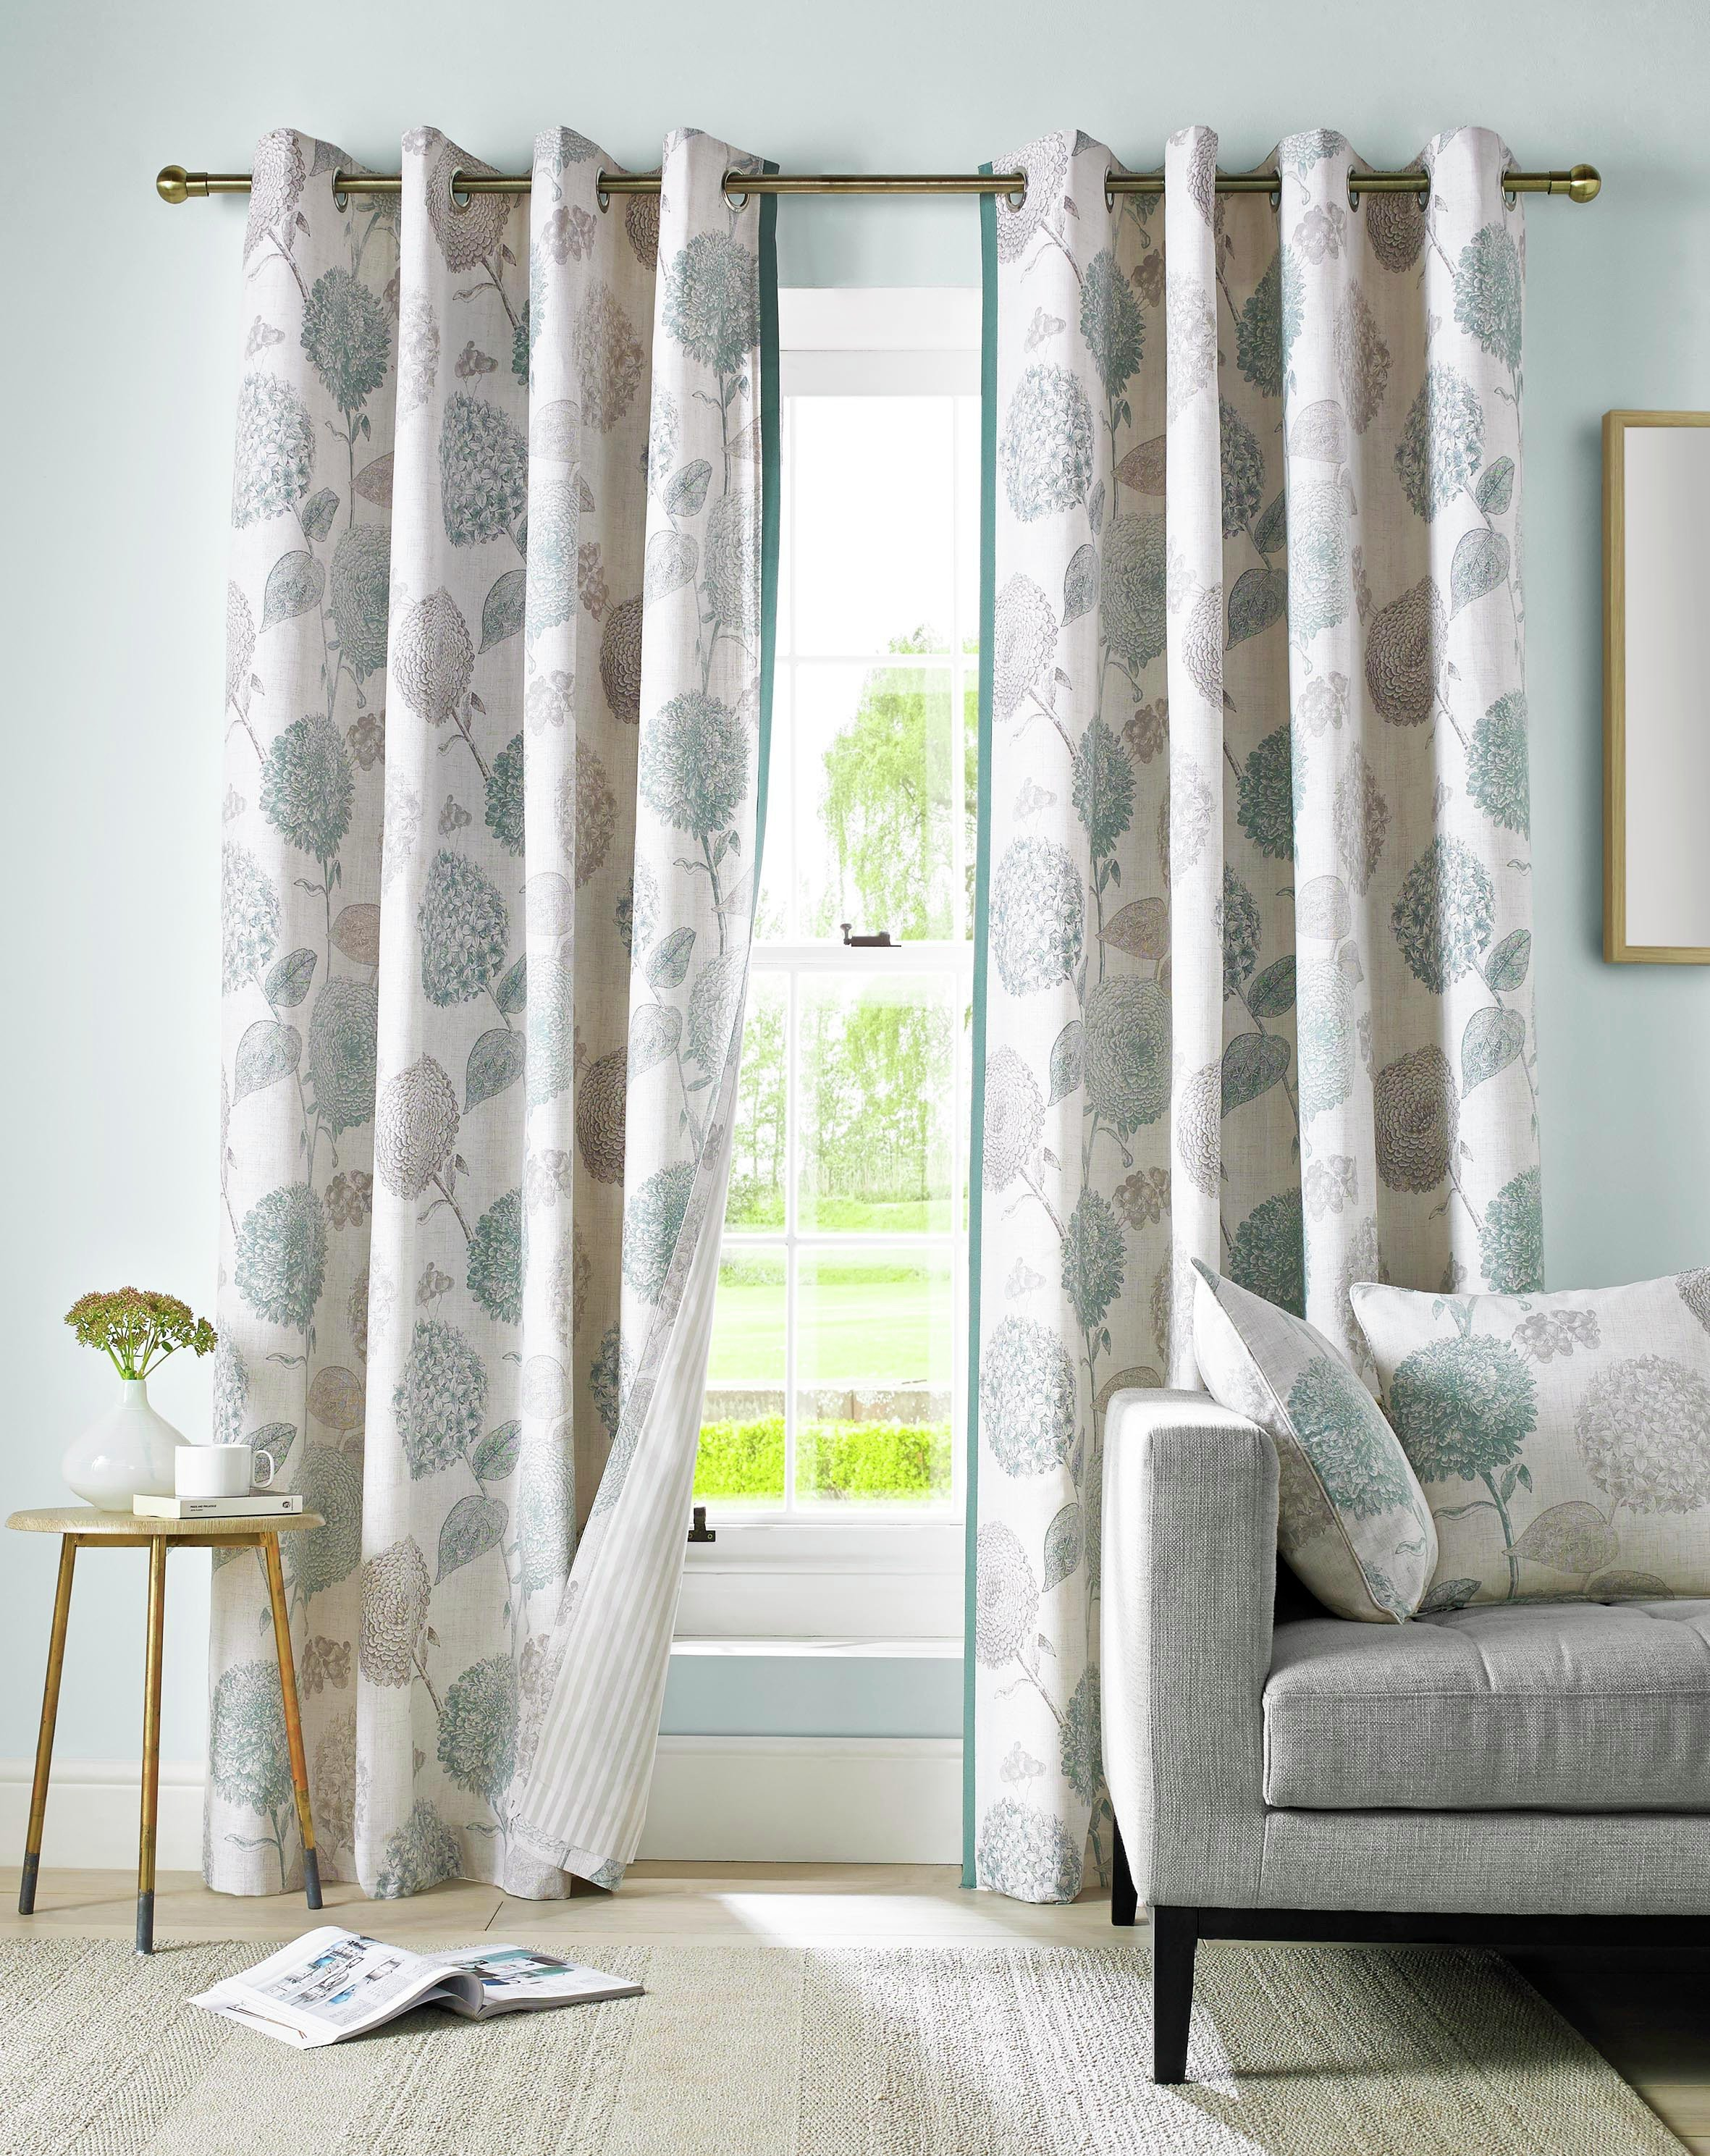 avril-lined-eyelet-curtains-165x229cm-duck-egg